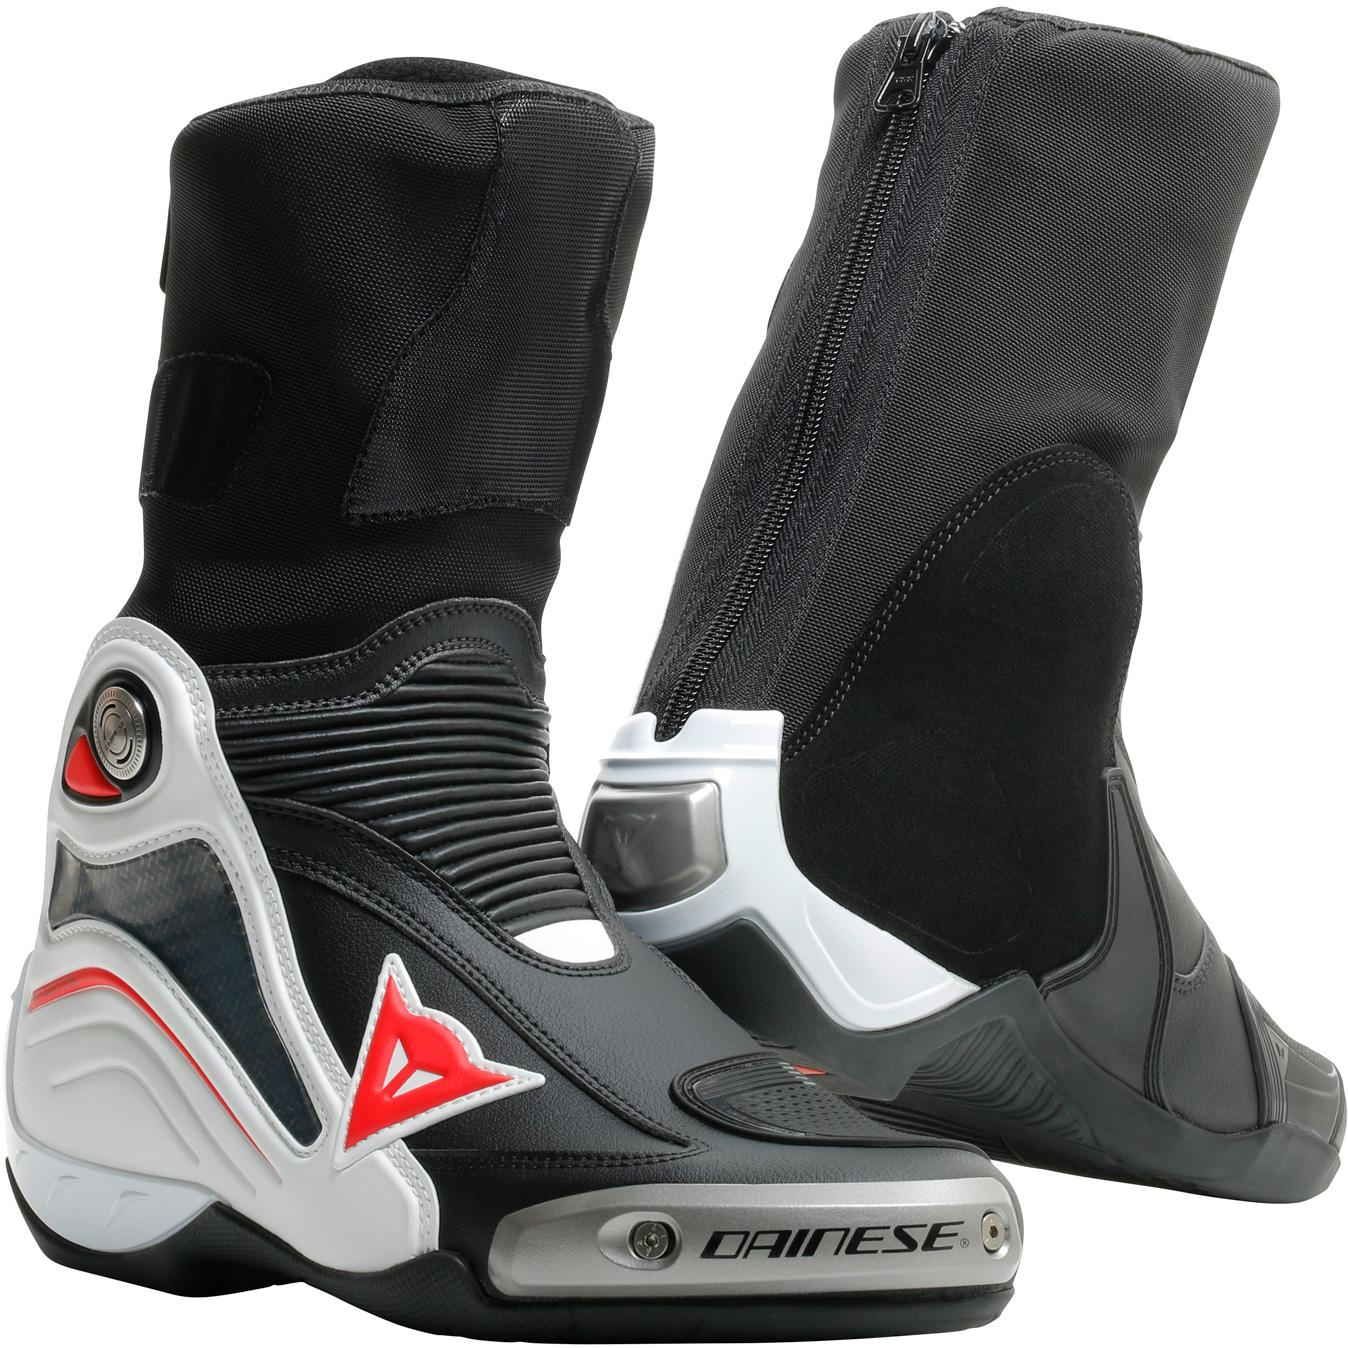 DAINESE-bottes-axial-d1-image-10939193